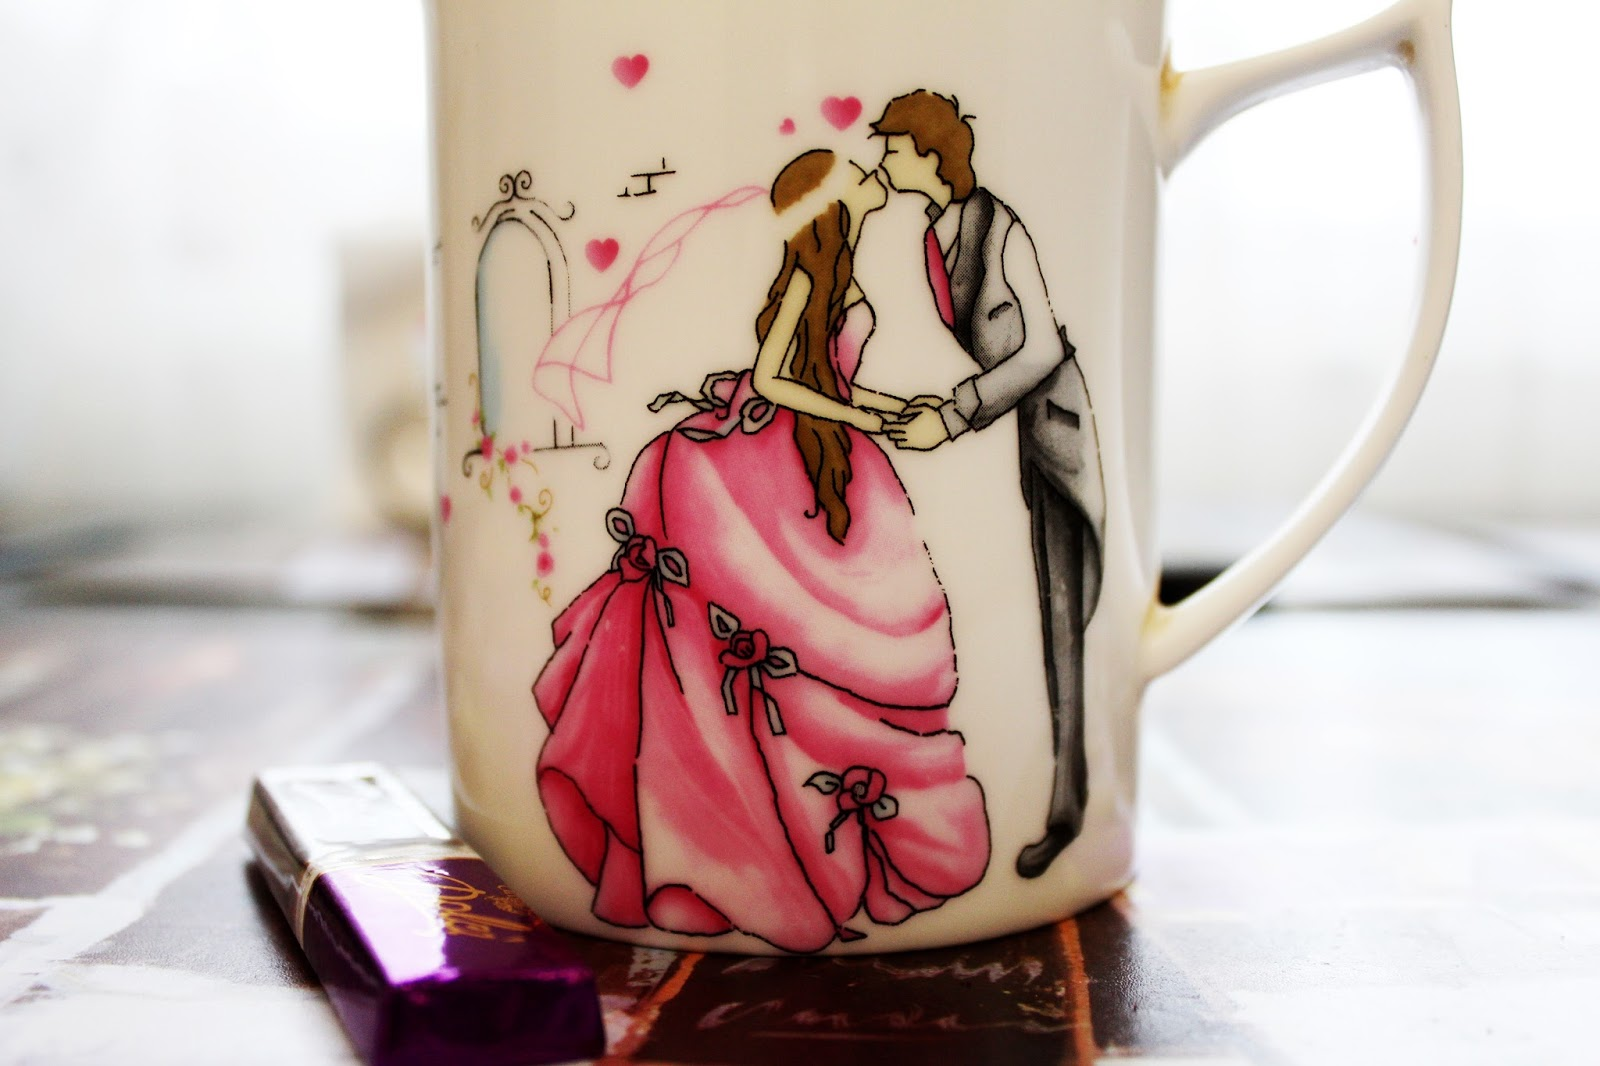 Mug showing kissing couple - 5 minute strategy to save your relationship - motherdistracted.co.uk